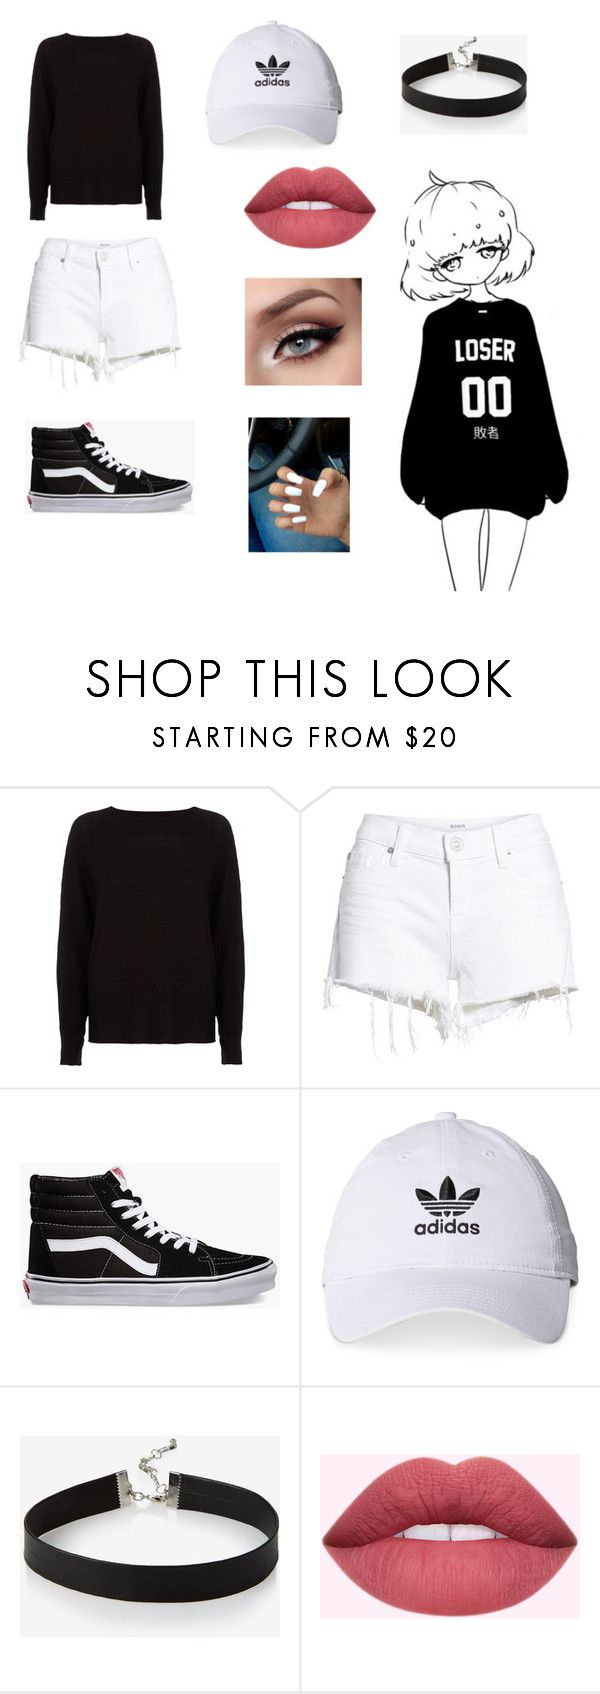 """Cute Black and White Kawaii ❤❤"" by laurinehyuga ❤ liked on Polyvore featuring River Island, Hudson Jeans, Vans, adidas and Express"